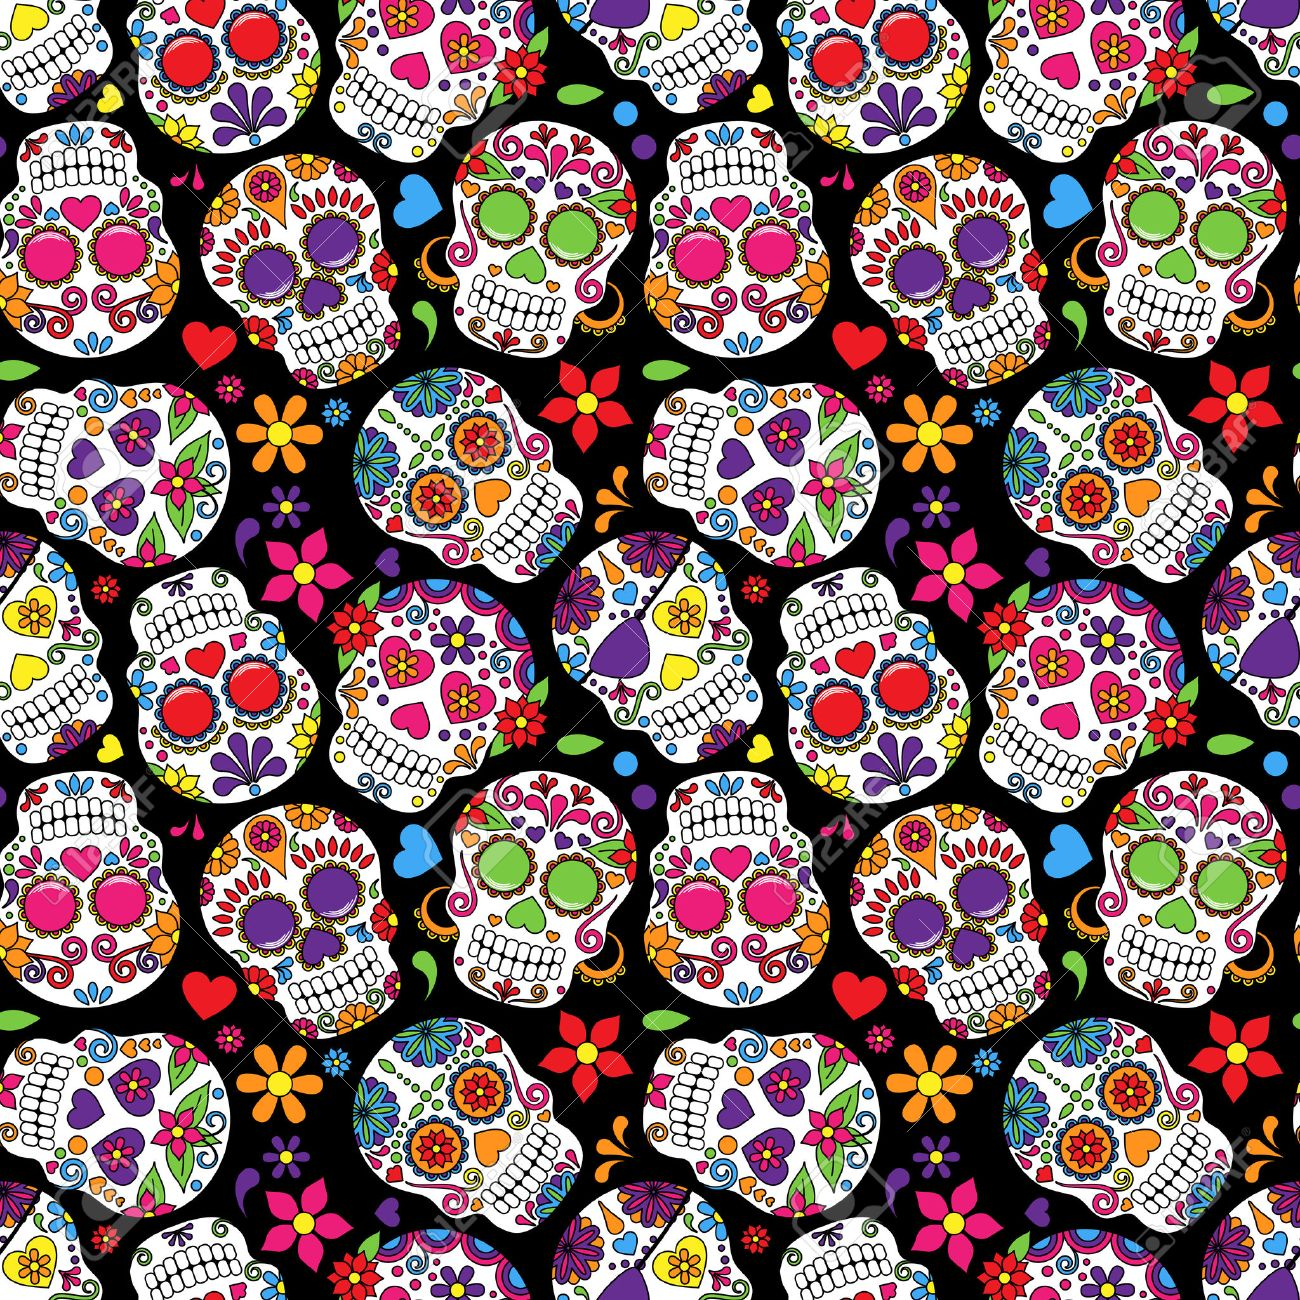 Day of the Dead Sugar Skull Seamless Vector Background - 36626880